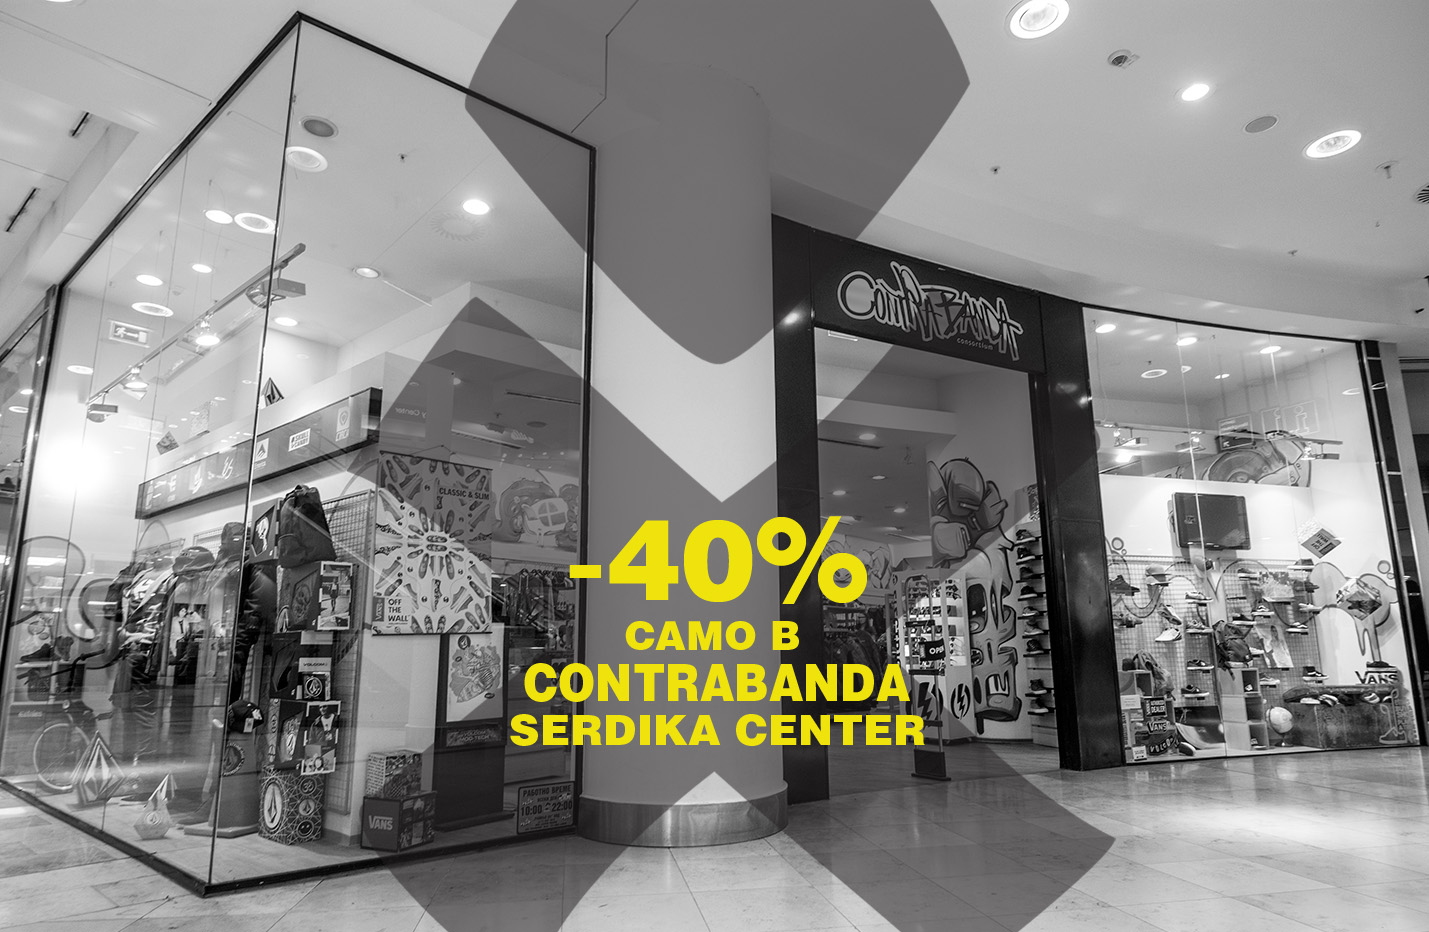 -40% в Contrabanda (Serdika Center)